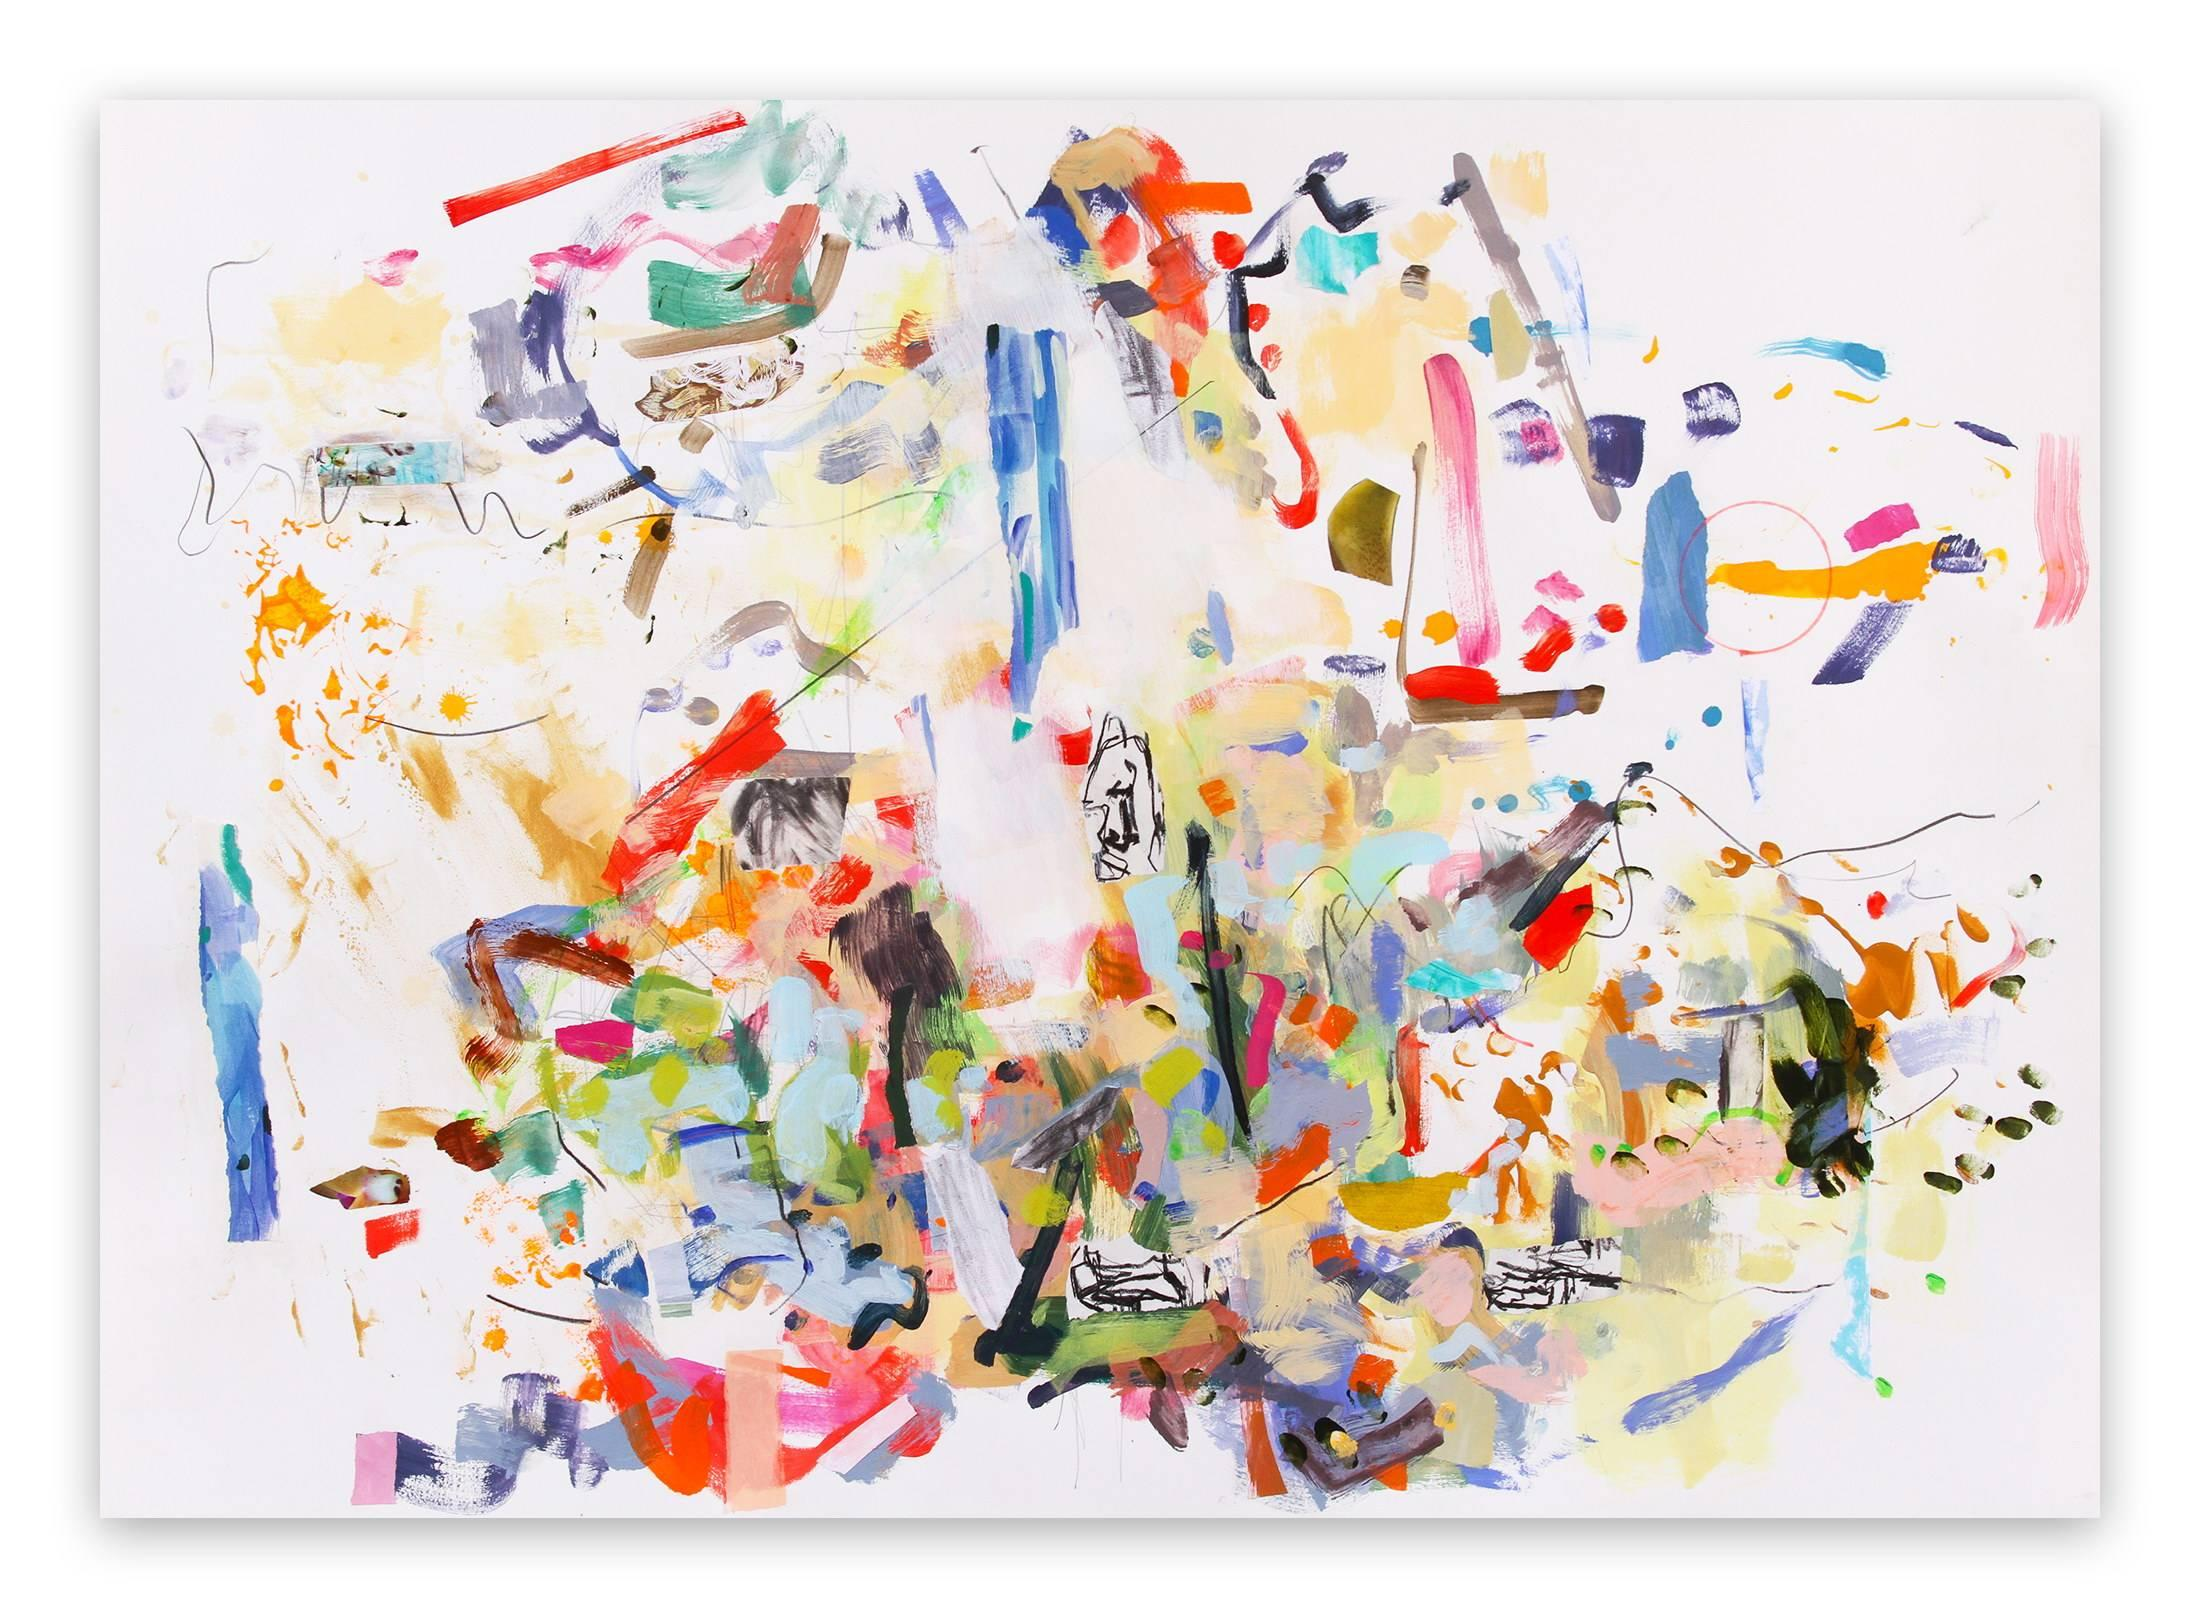 Fragment (Abstract Expressionism painting)